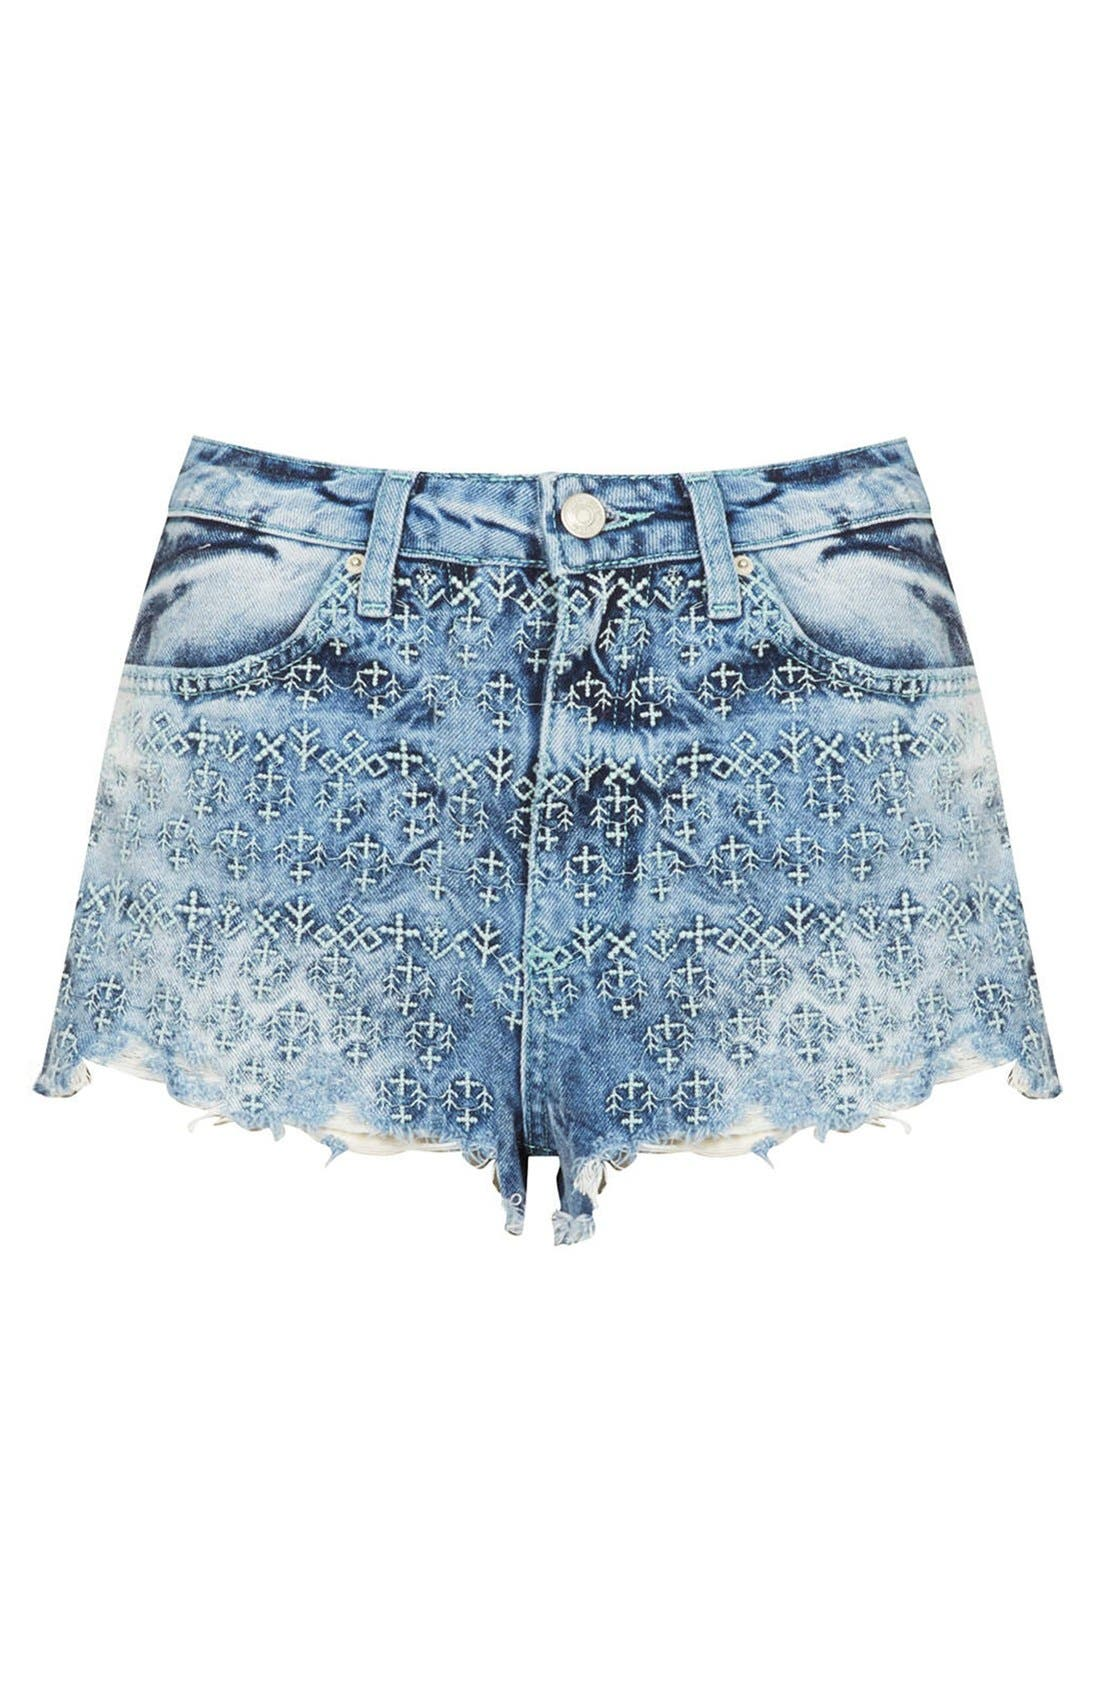 Alternate Image 3  - Topshop Moto 'Folk Law' Embroidered Denim Shorts